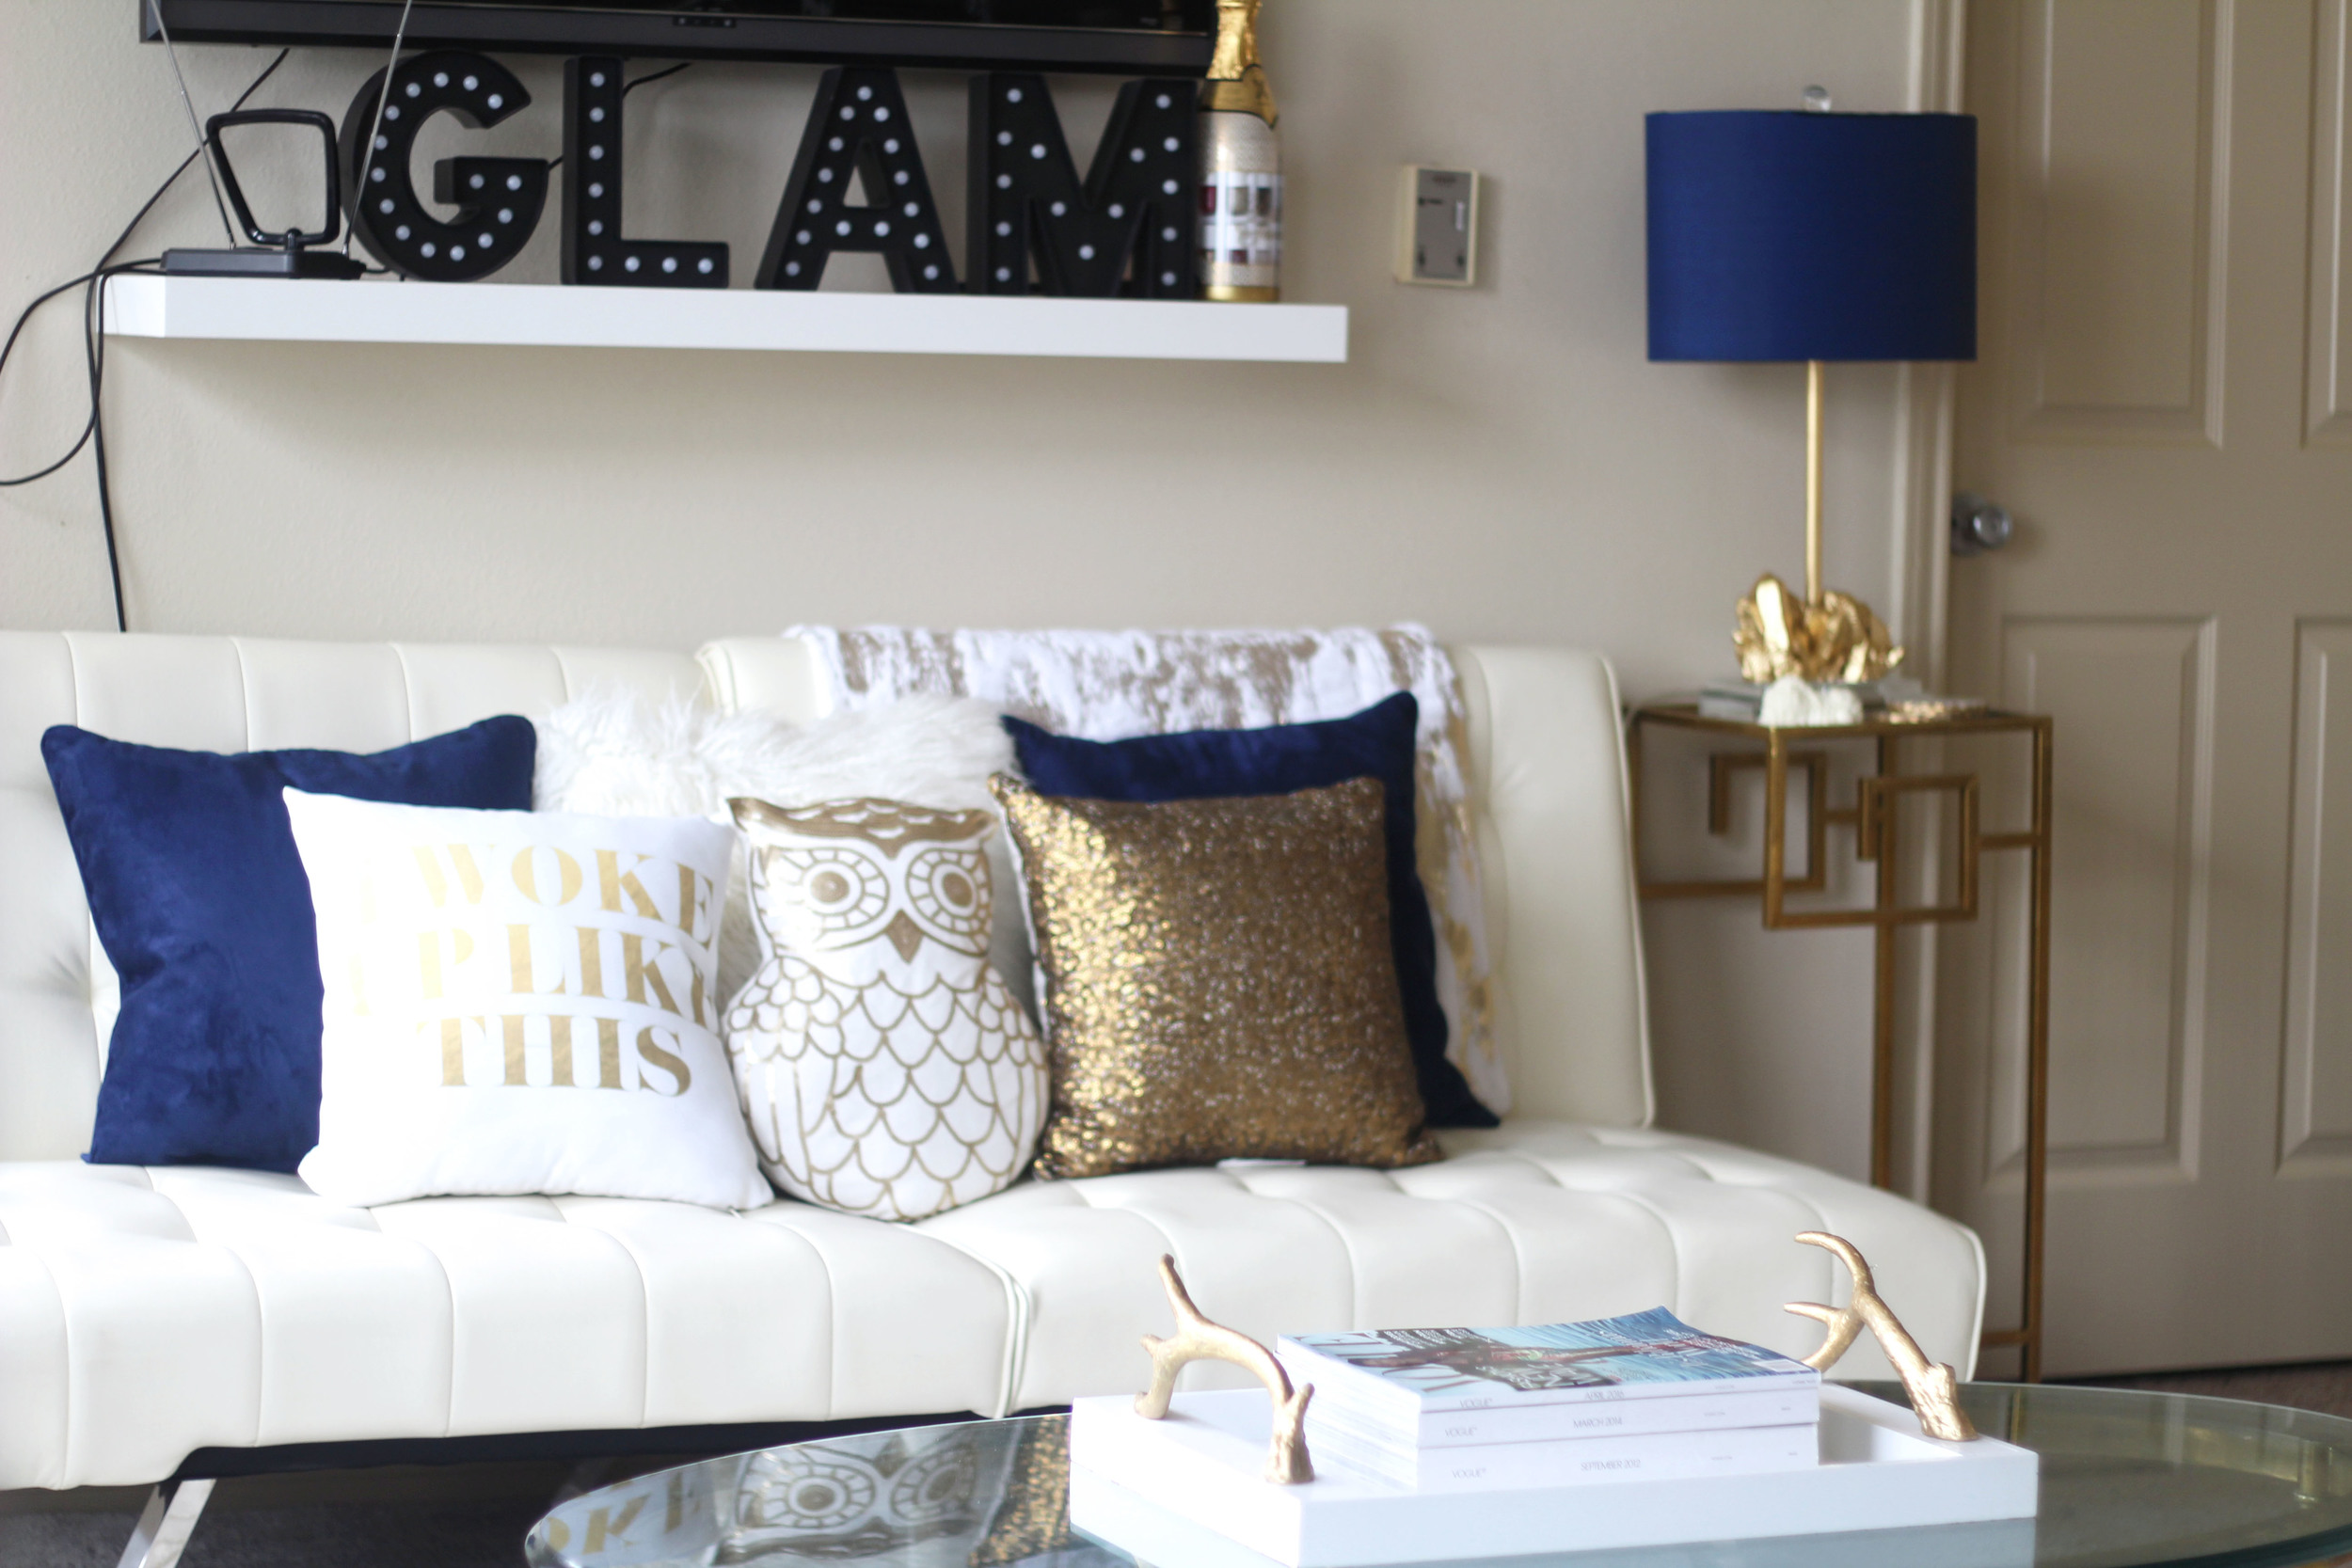 6 easy ways to update accent decor   royal blue + gold